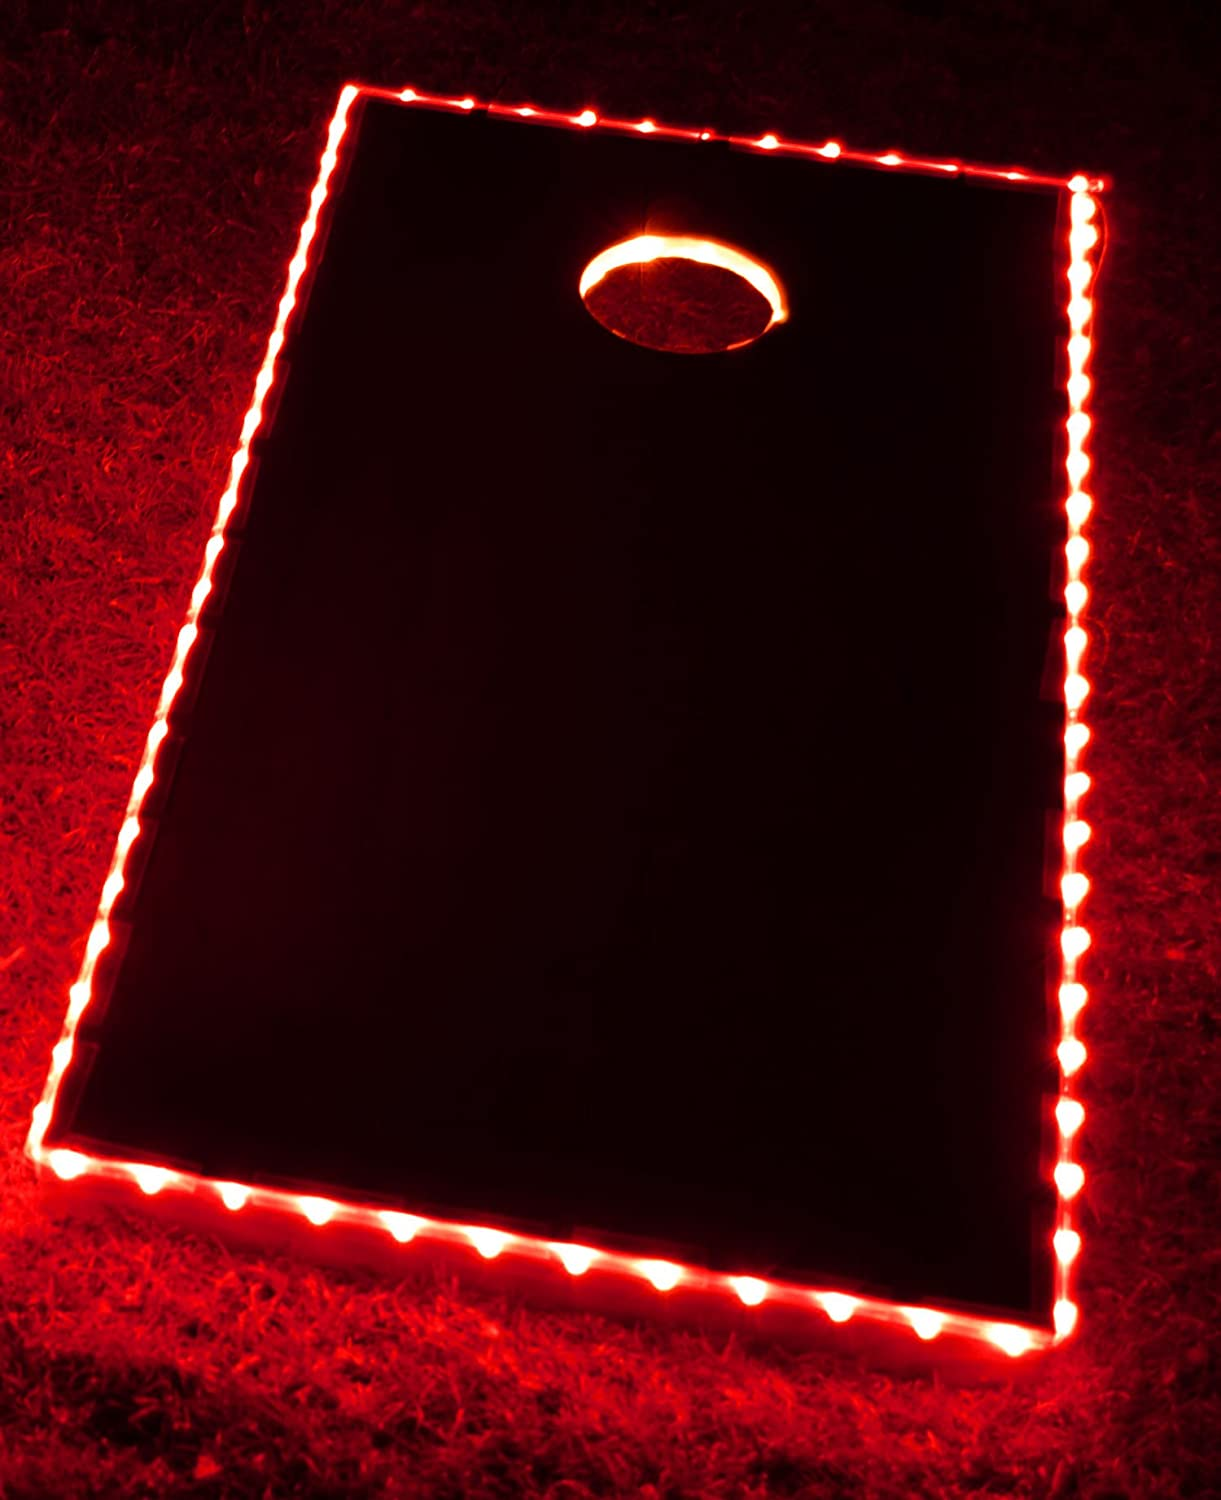 GlowCity Cornhole Lights Board Kit Double The Illumination Closer Spaced LED's (Blue) LED_cornholesb